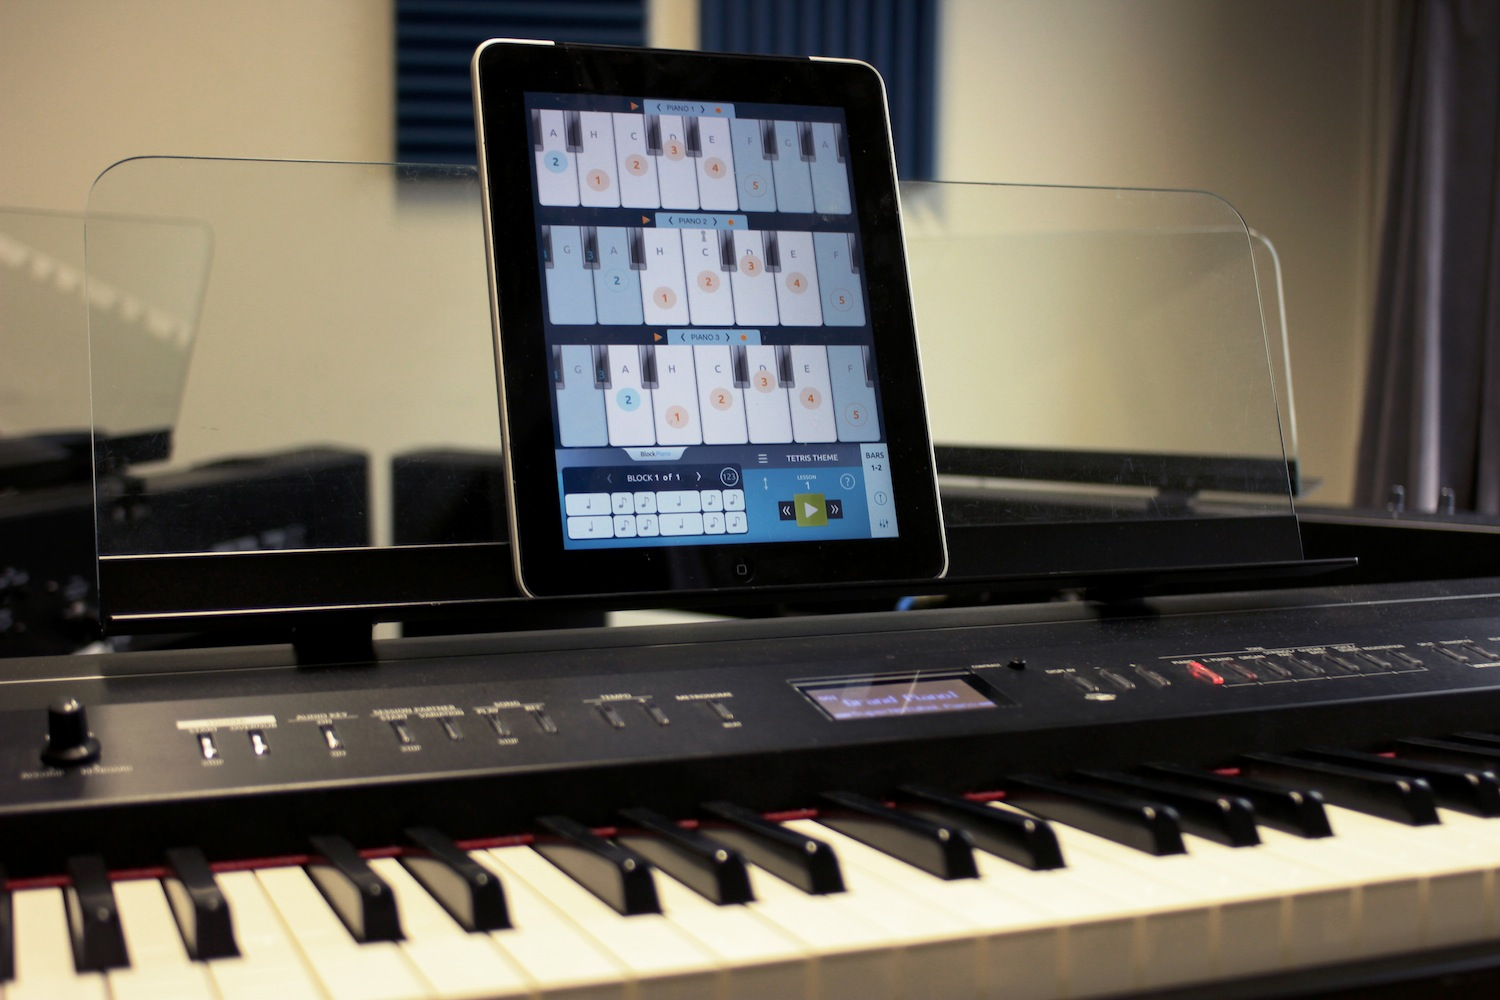 Learn to play the piano with the help of your ipad